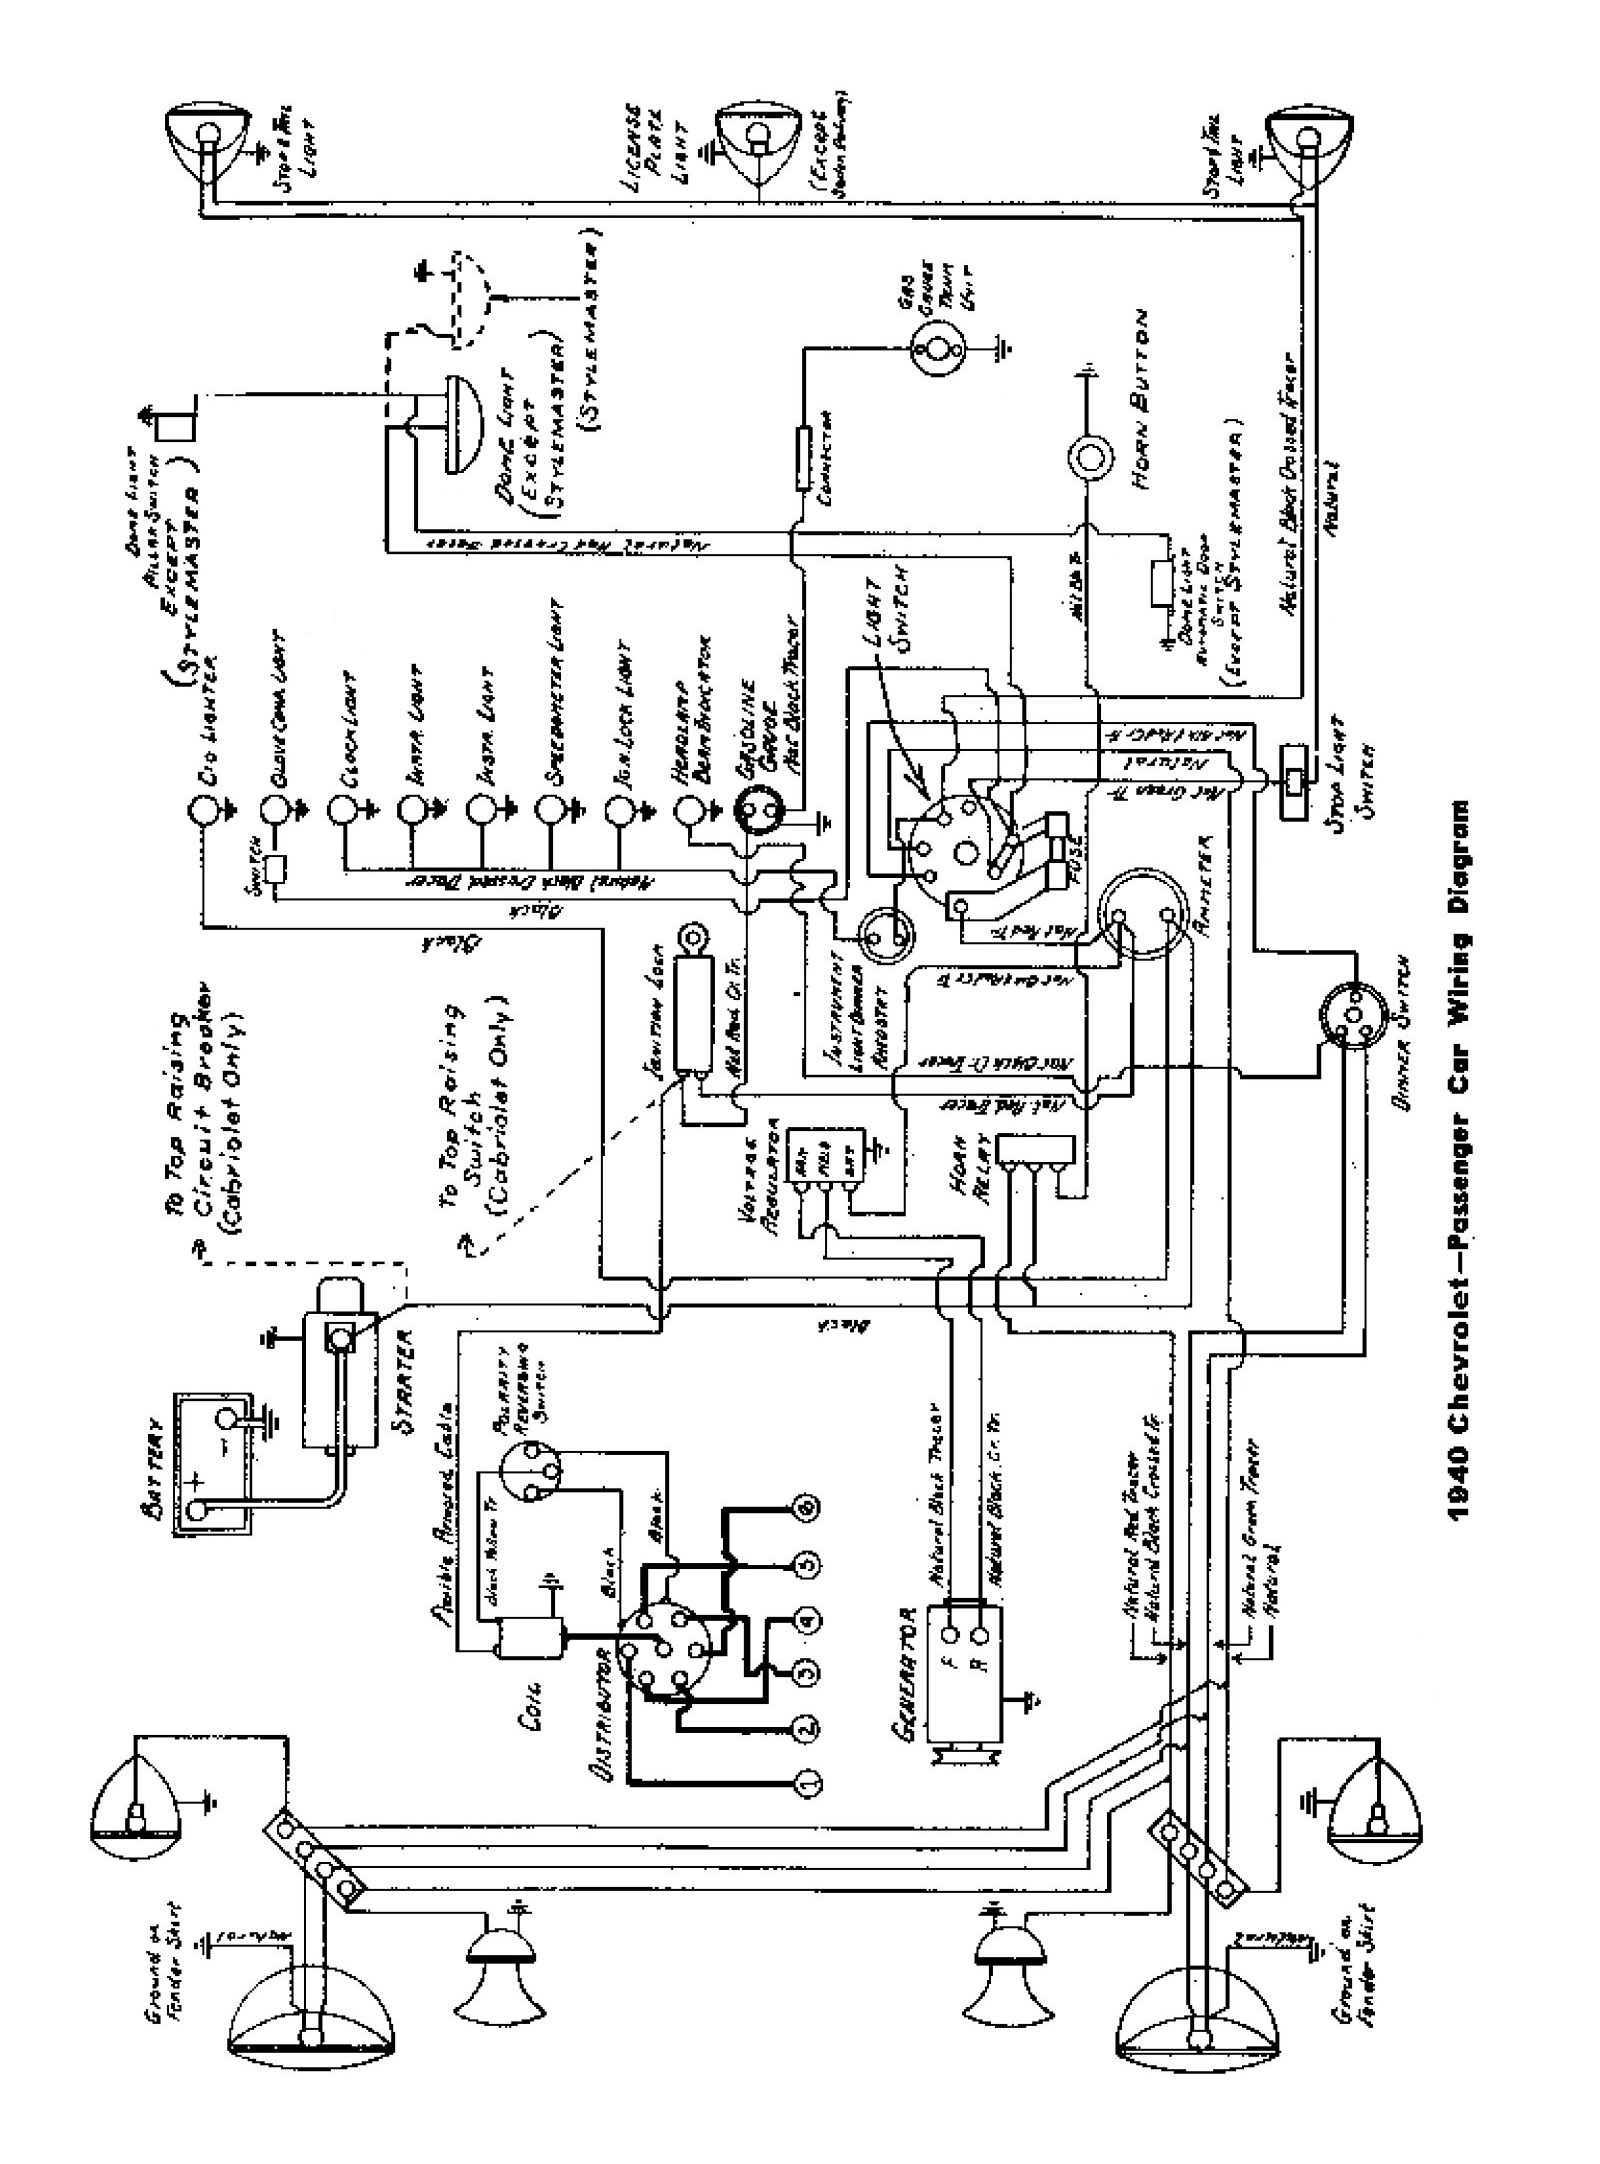 1949 International Truck Wiring Harness - Wiring Diagram M2 on